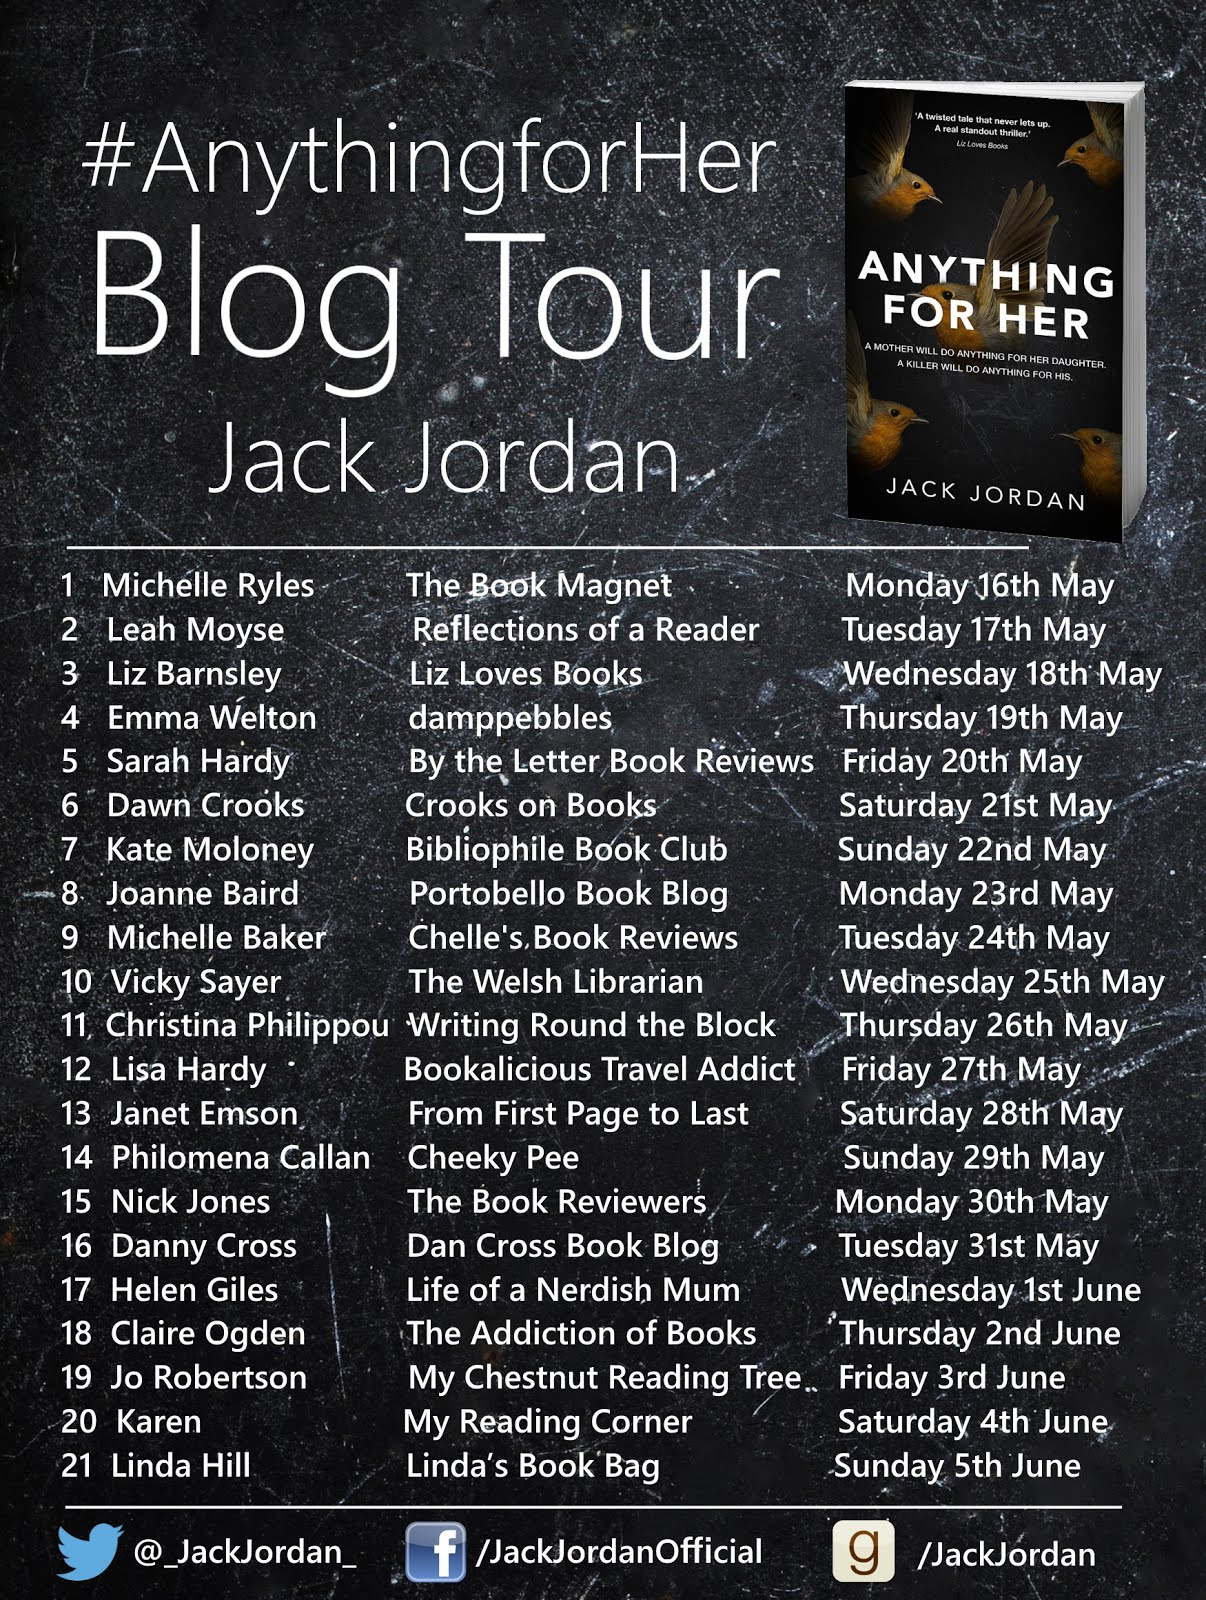 ANYTHING FOR HER BLOG TOUR